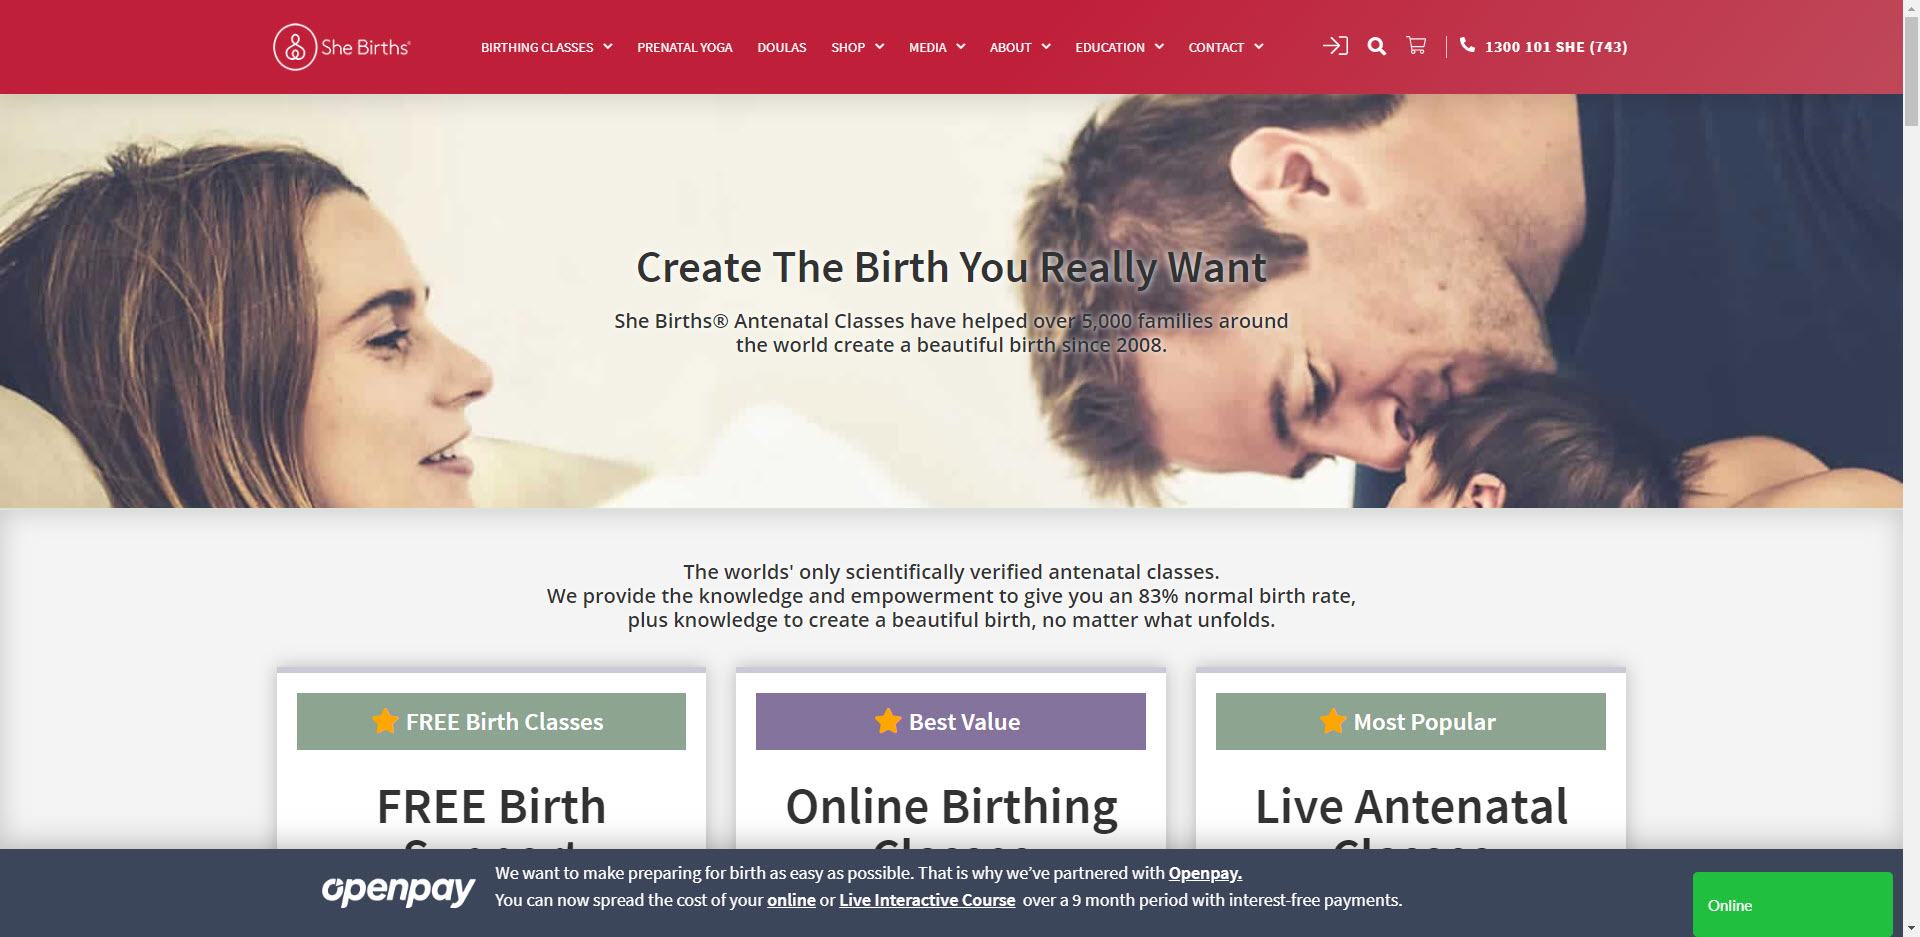 Maternity Affiliate Programs - she births